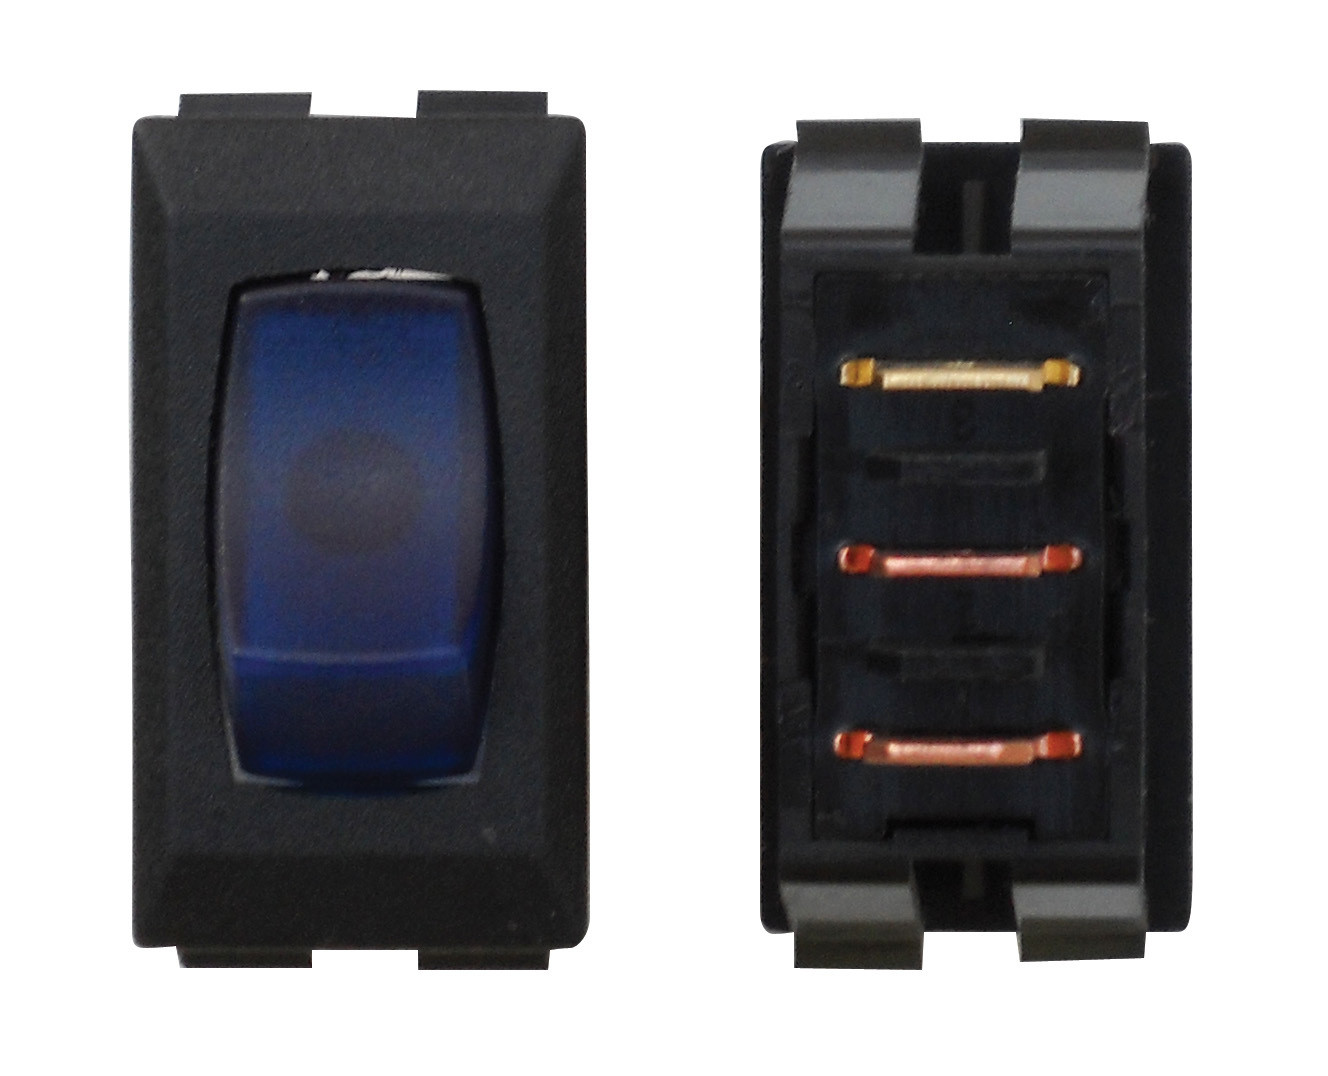 Illuminated On/Off Switch - Blue/Black 1/card